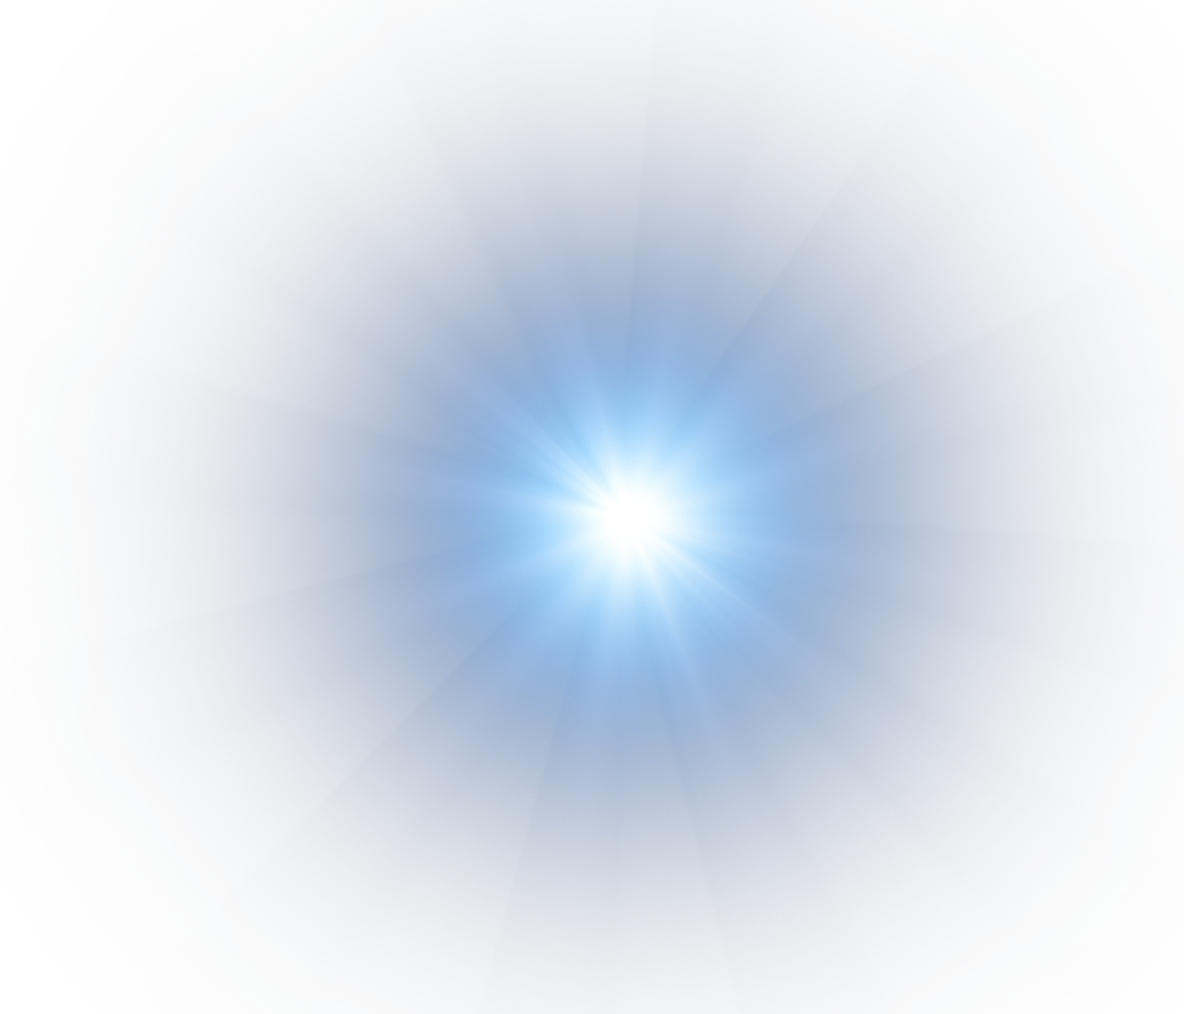 Sunlight glare png. Light download sun rays